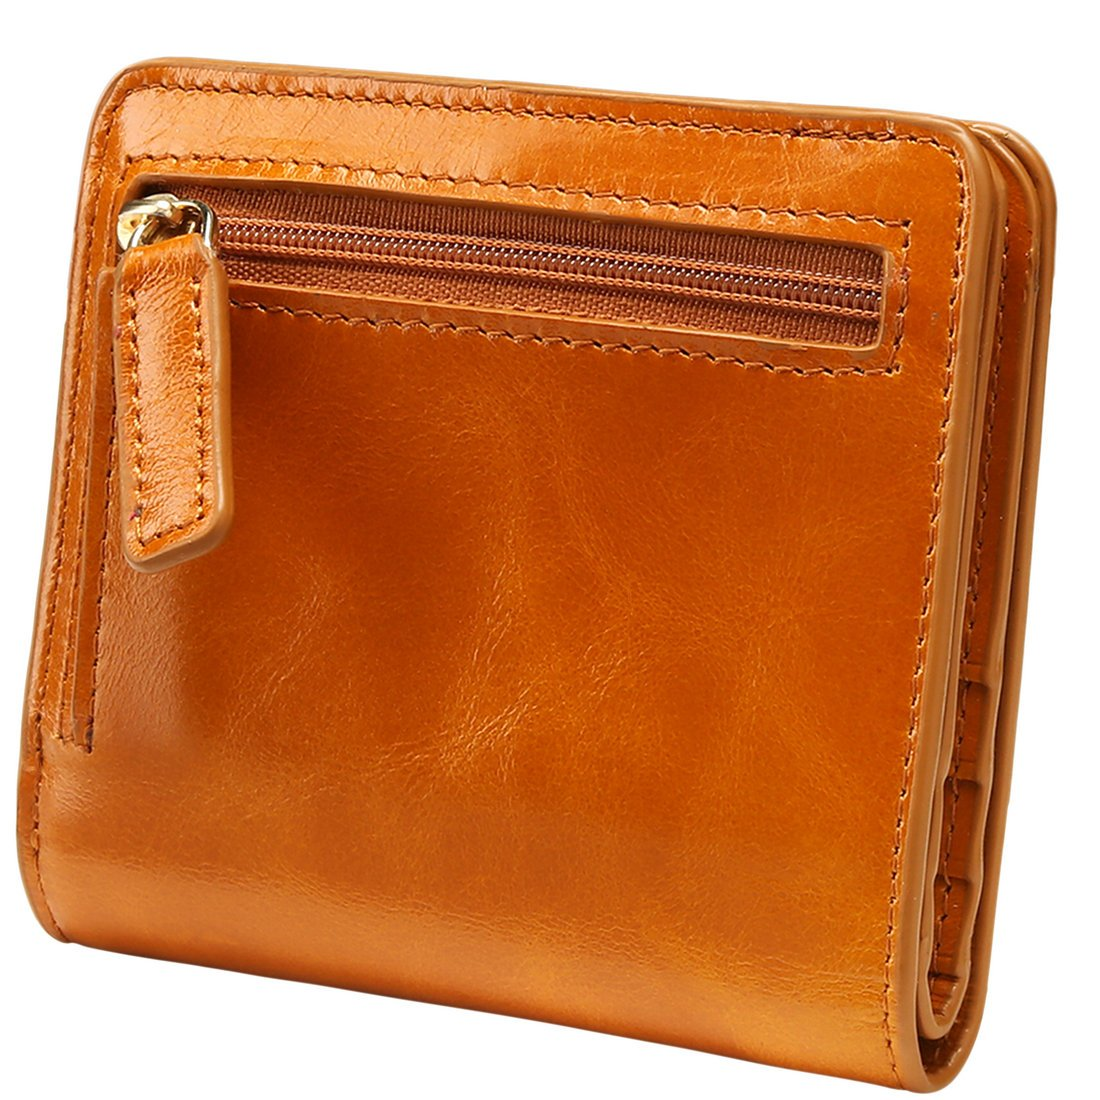 Itslife Women's Rfid Blocking Small Compact Bifold Leather Pocket Wallet Ladies Mini Purse with id Window (Brown) by ITSLIFE (Image #7)